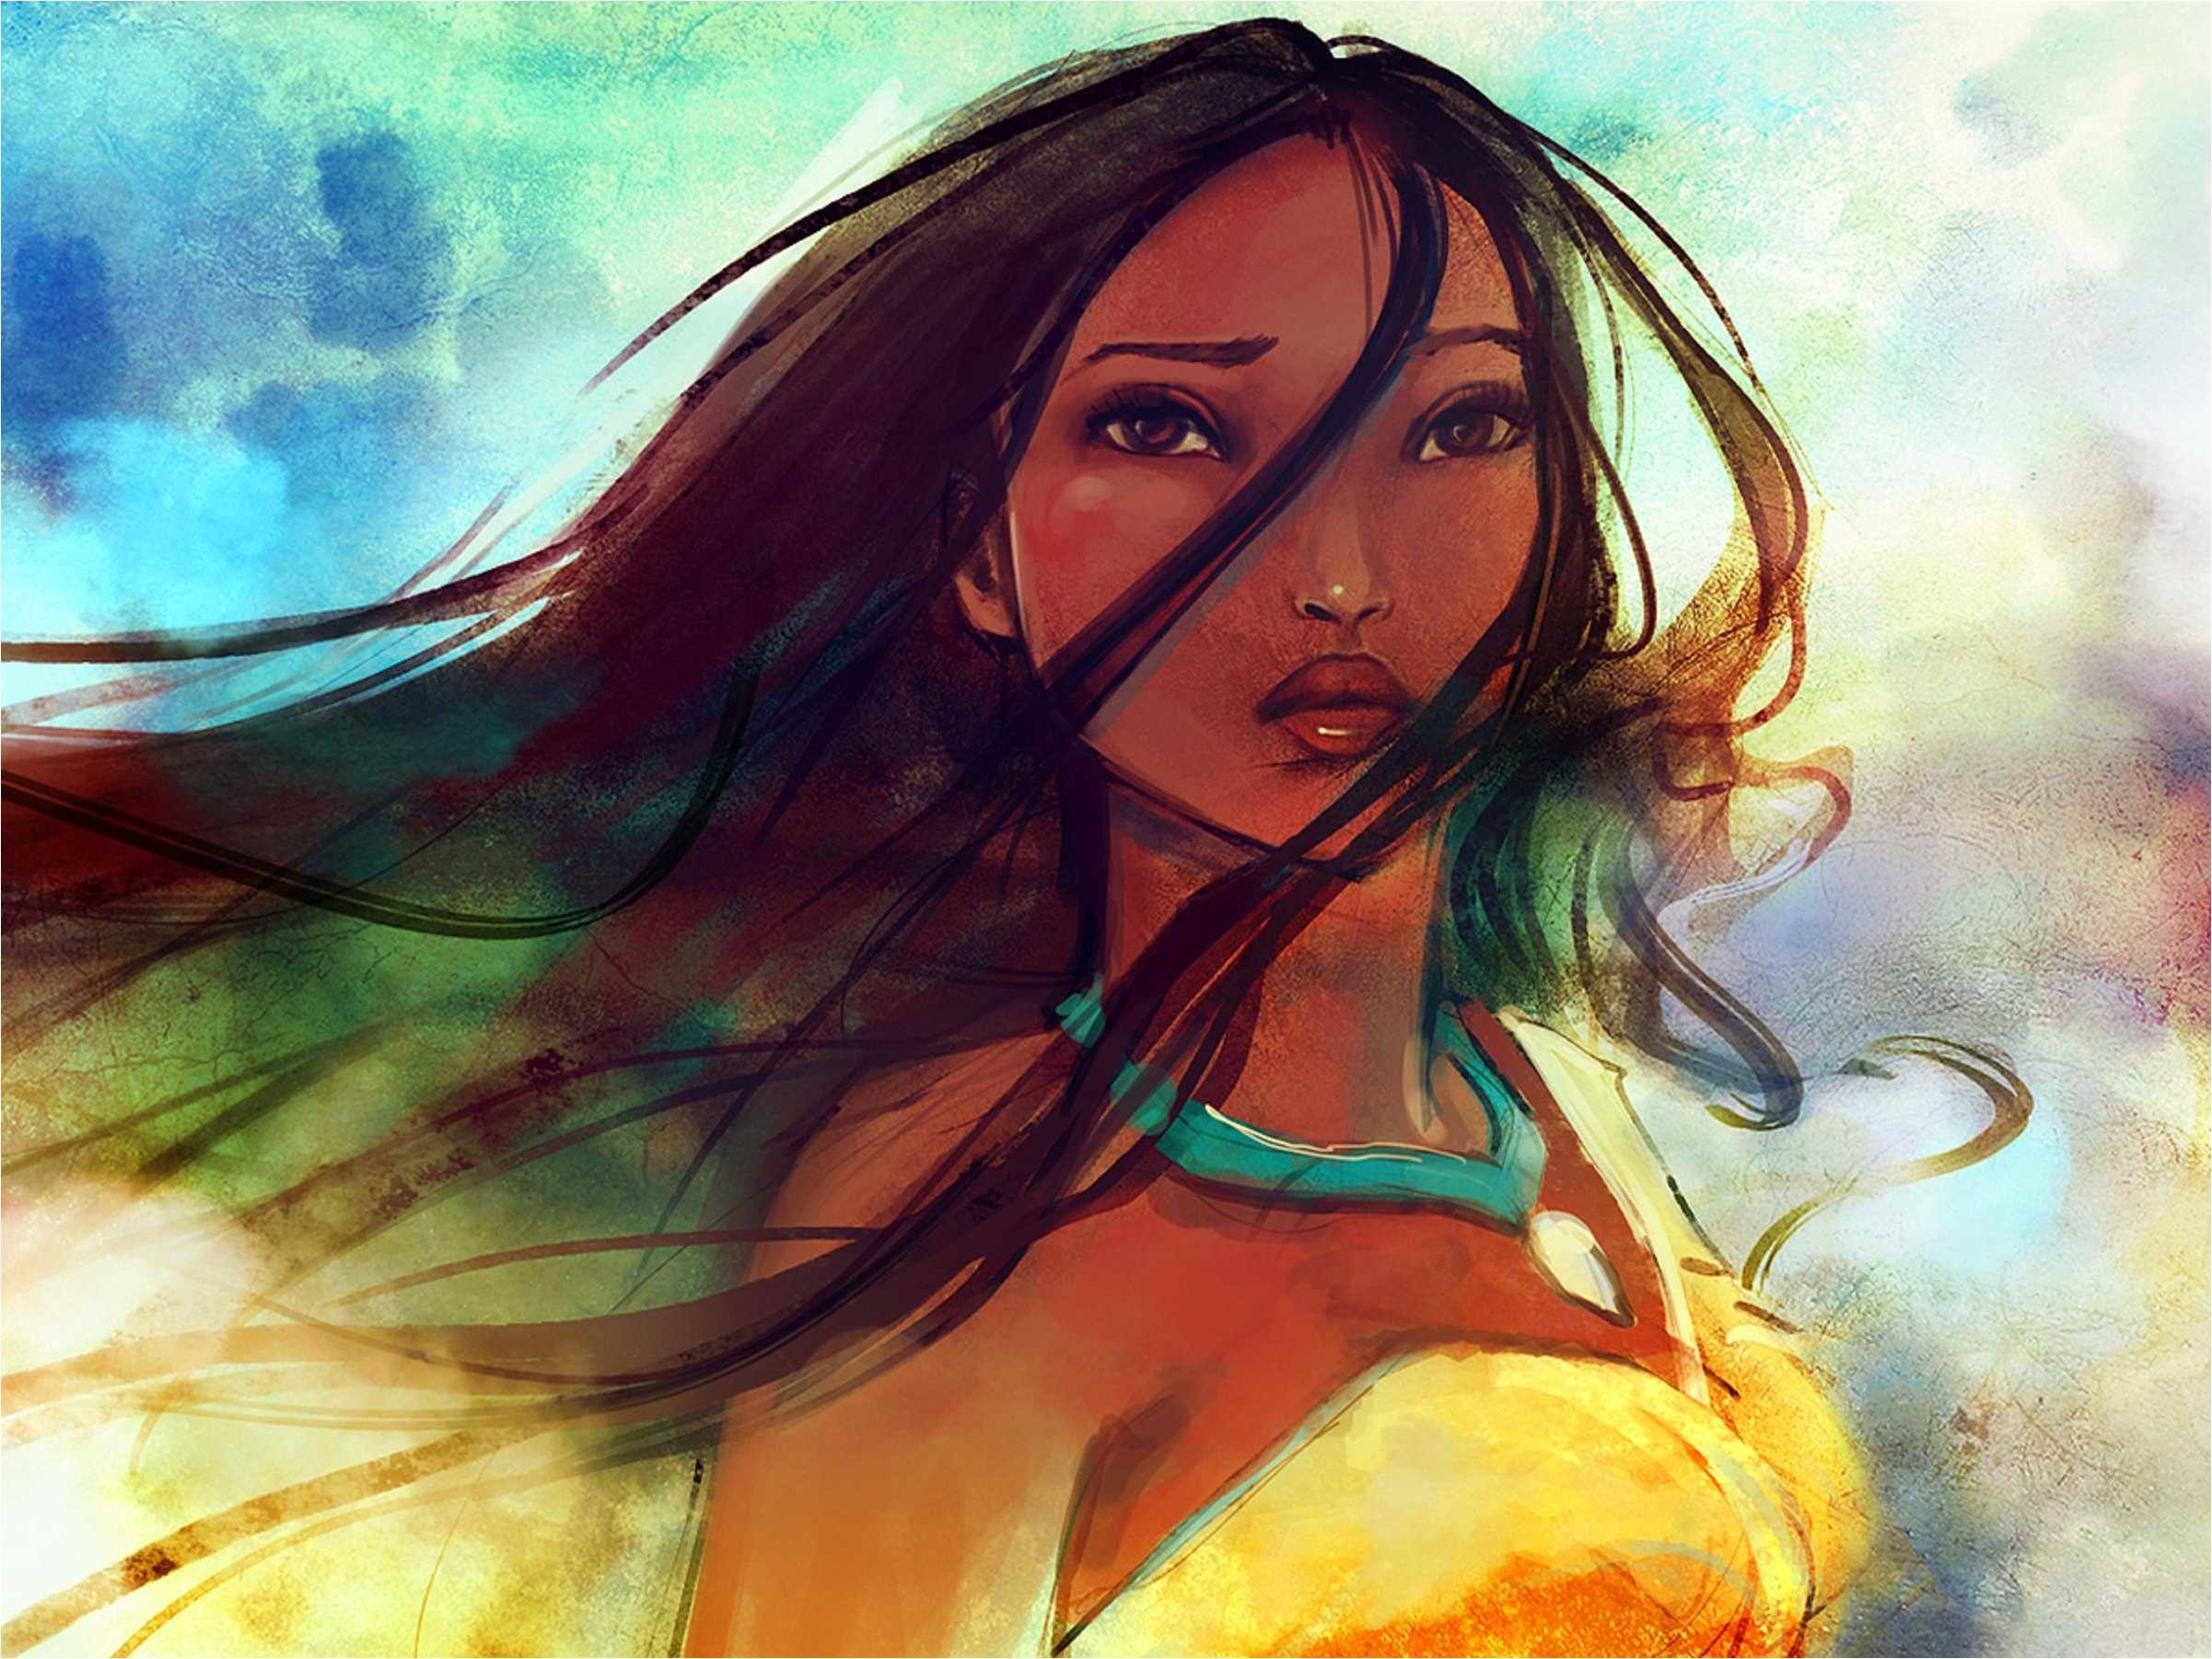 Res: 2402x1802, Download Free Pocahontas Wallpapers 2400x1800 px